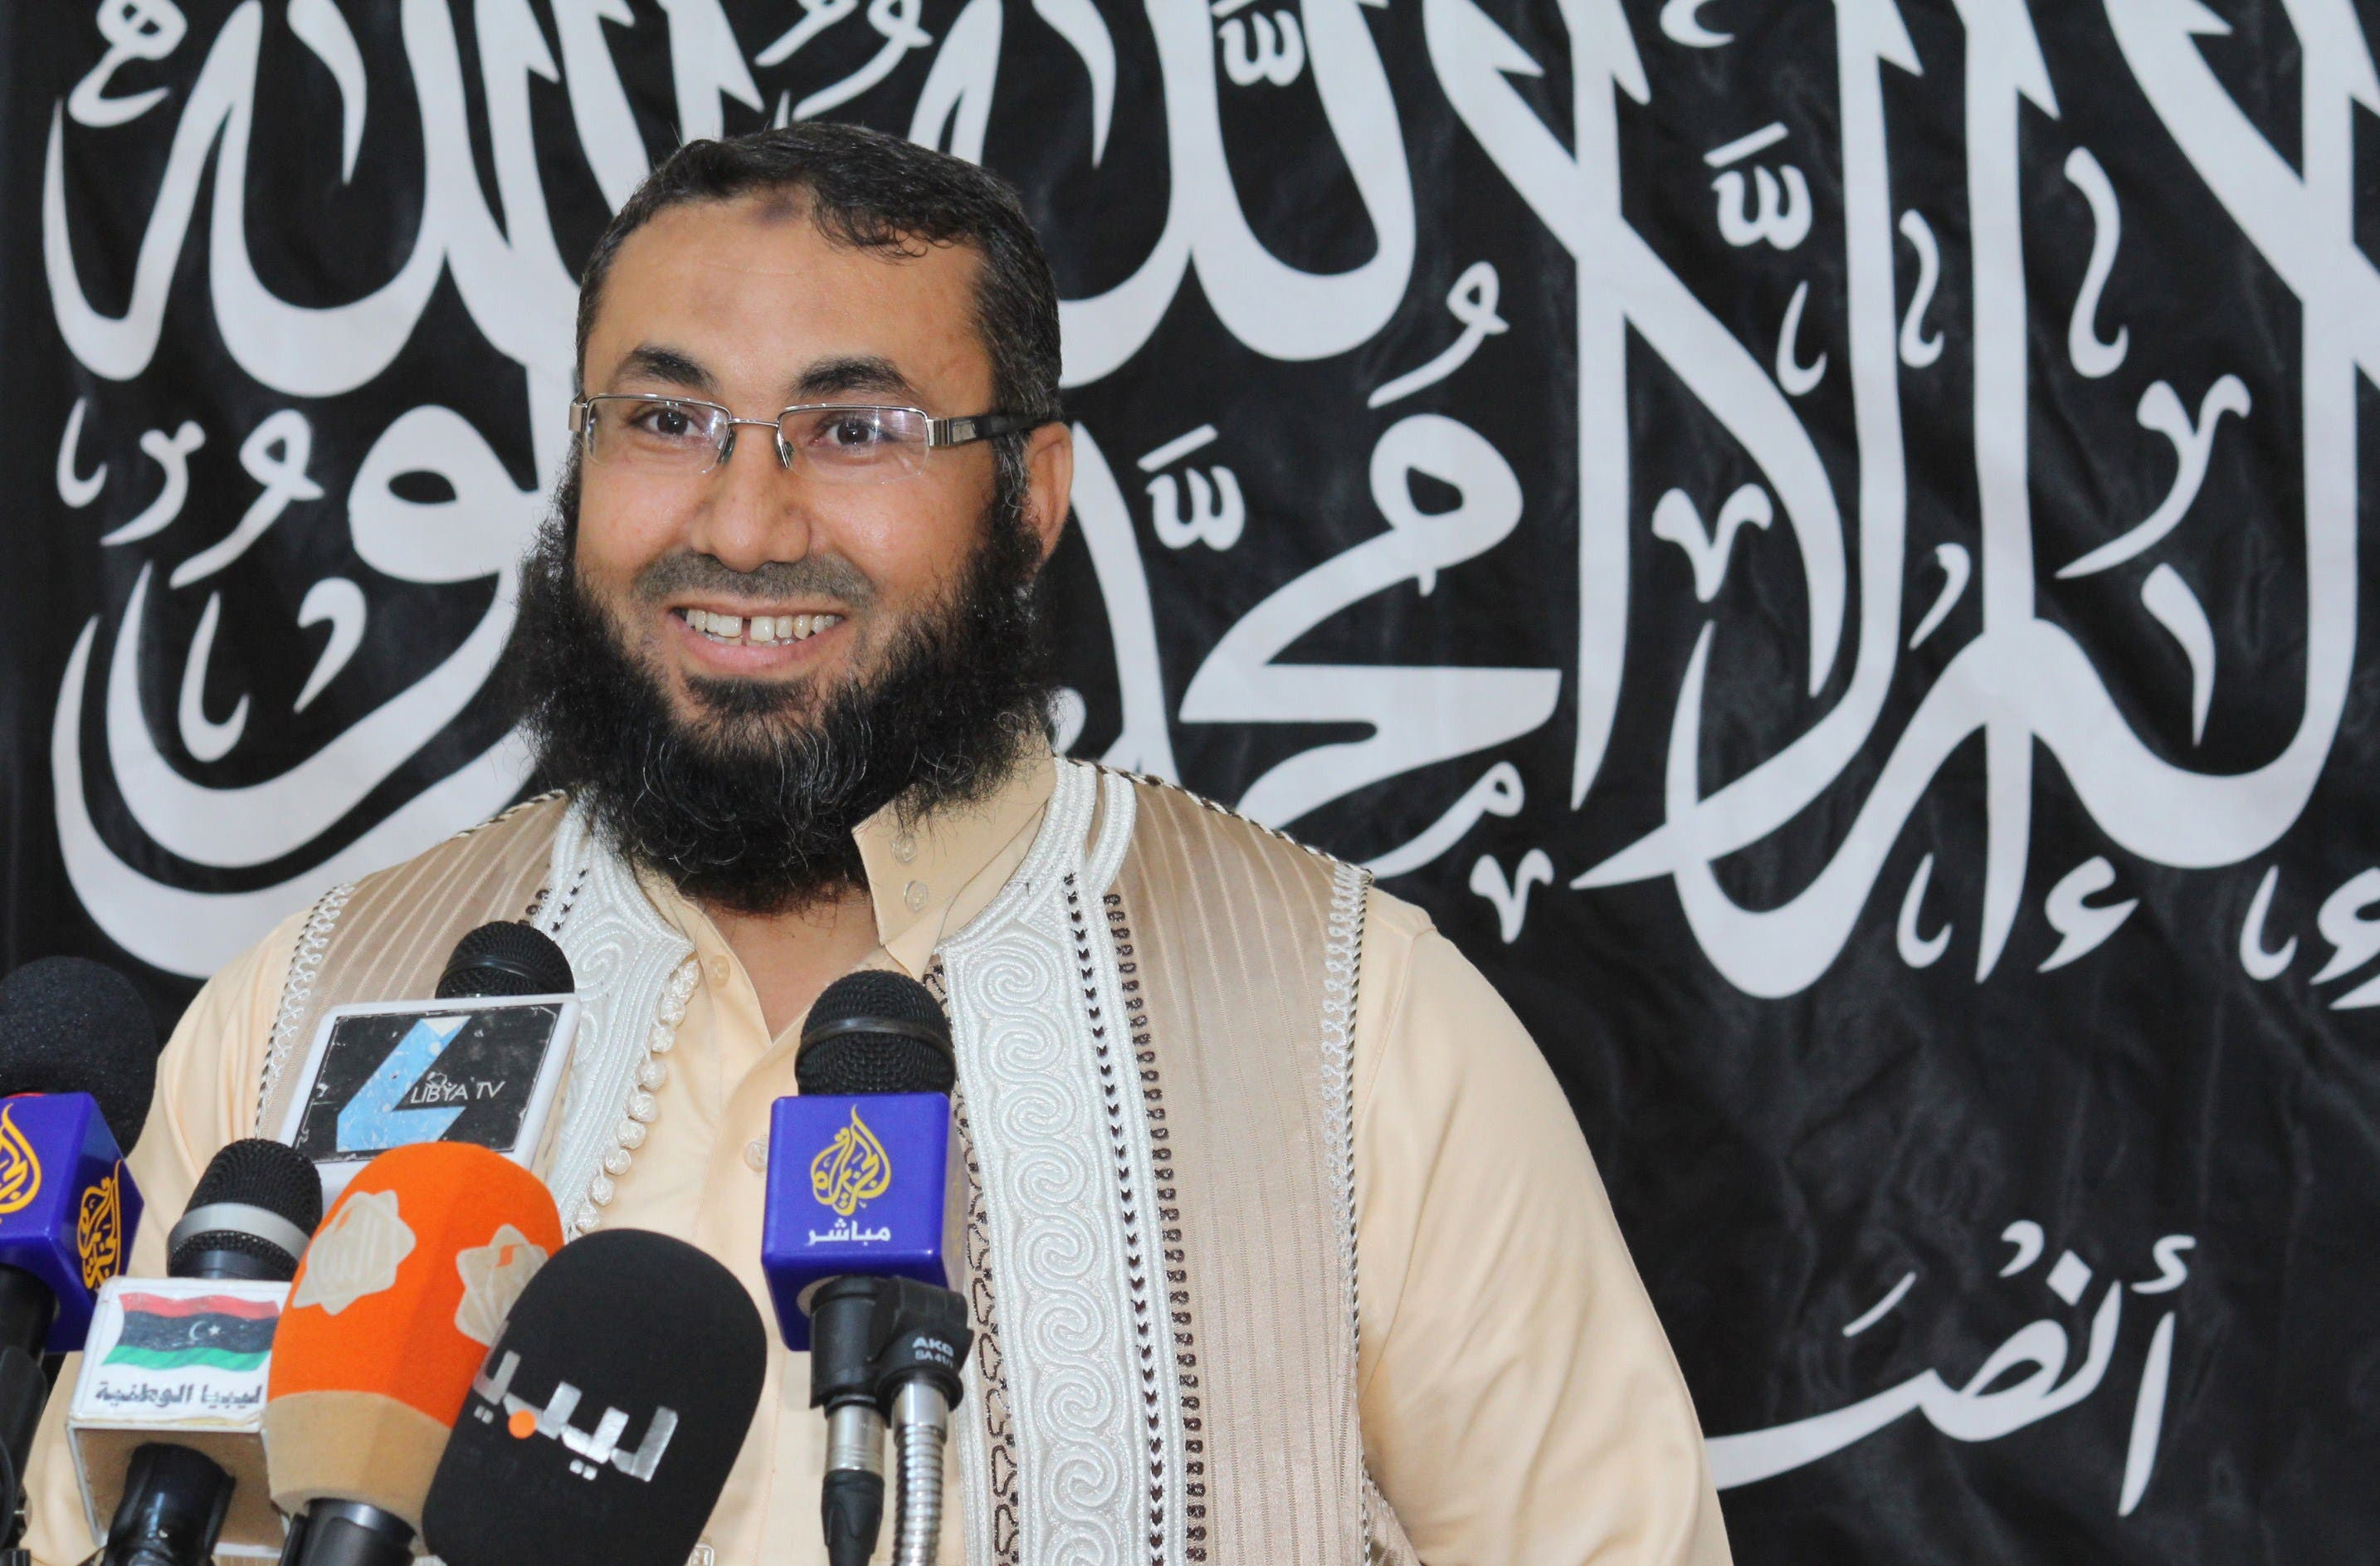 Mohamed Al-Zehawi, leader of Libyan jihadist group Ansar Asharia (AFP)